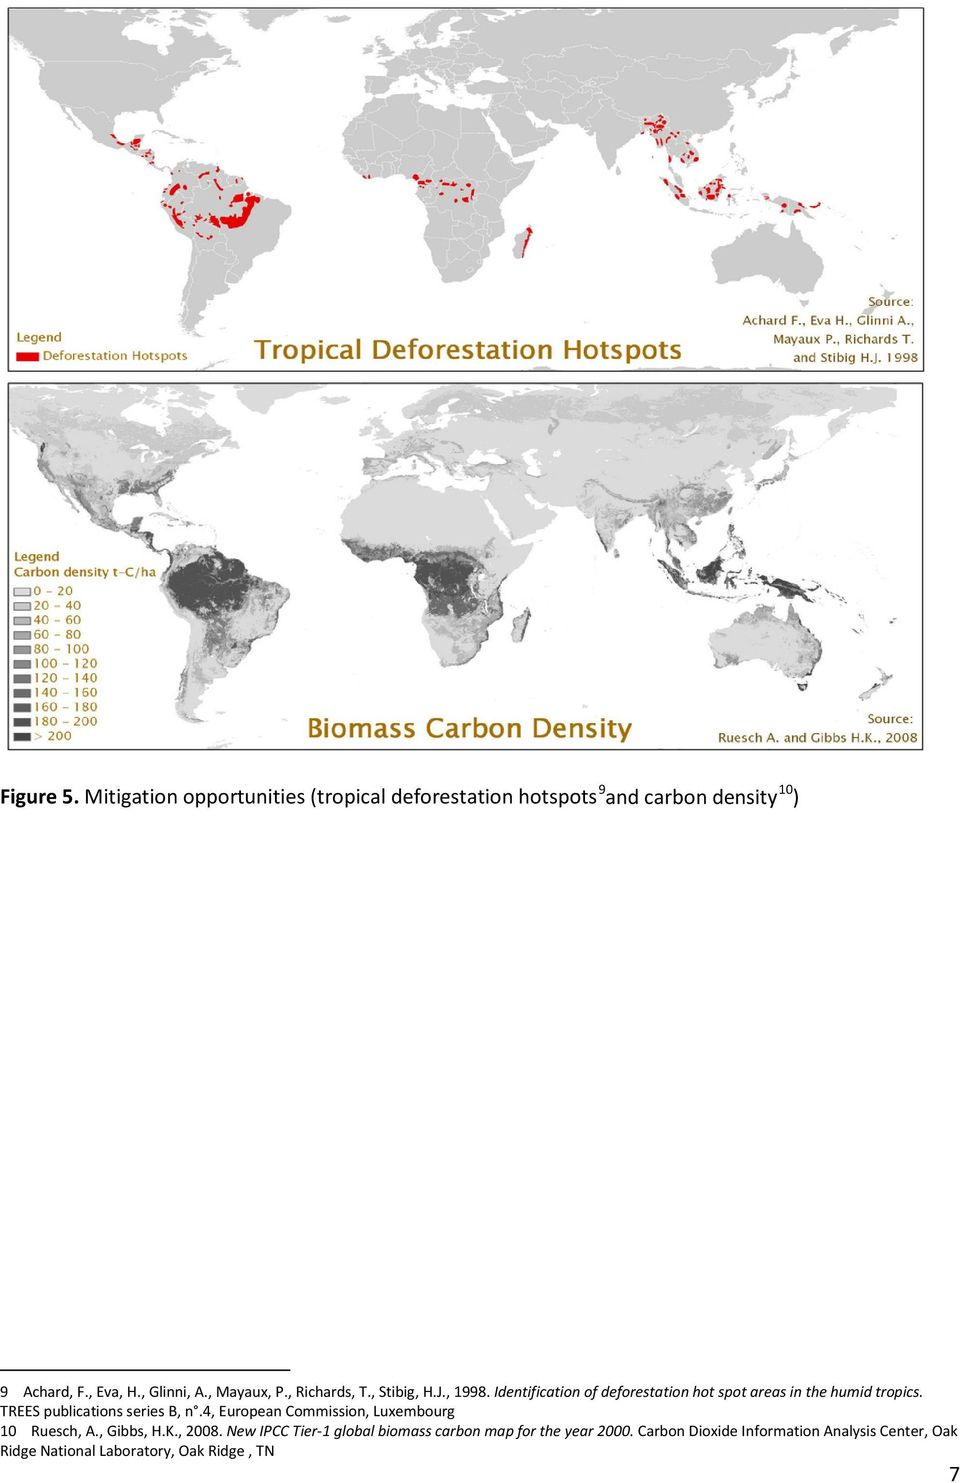 Identification of deforestation hot spot areas in the humid tropics. TREES publications series B, n.